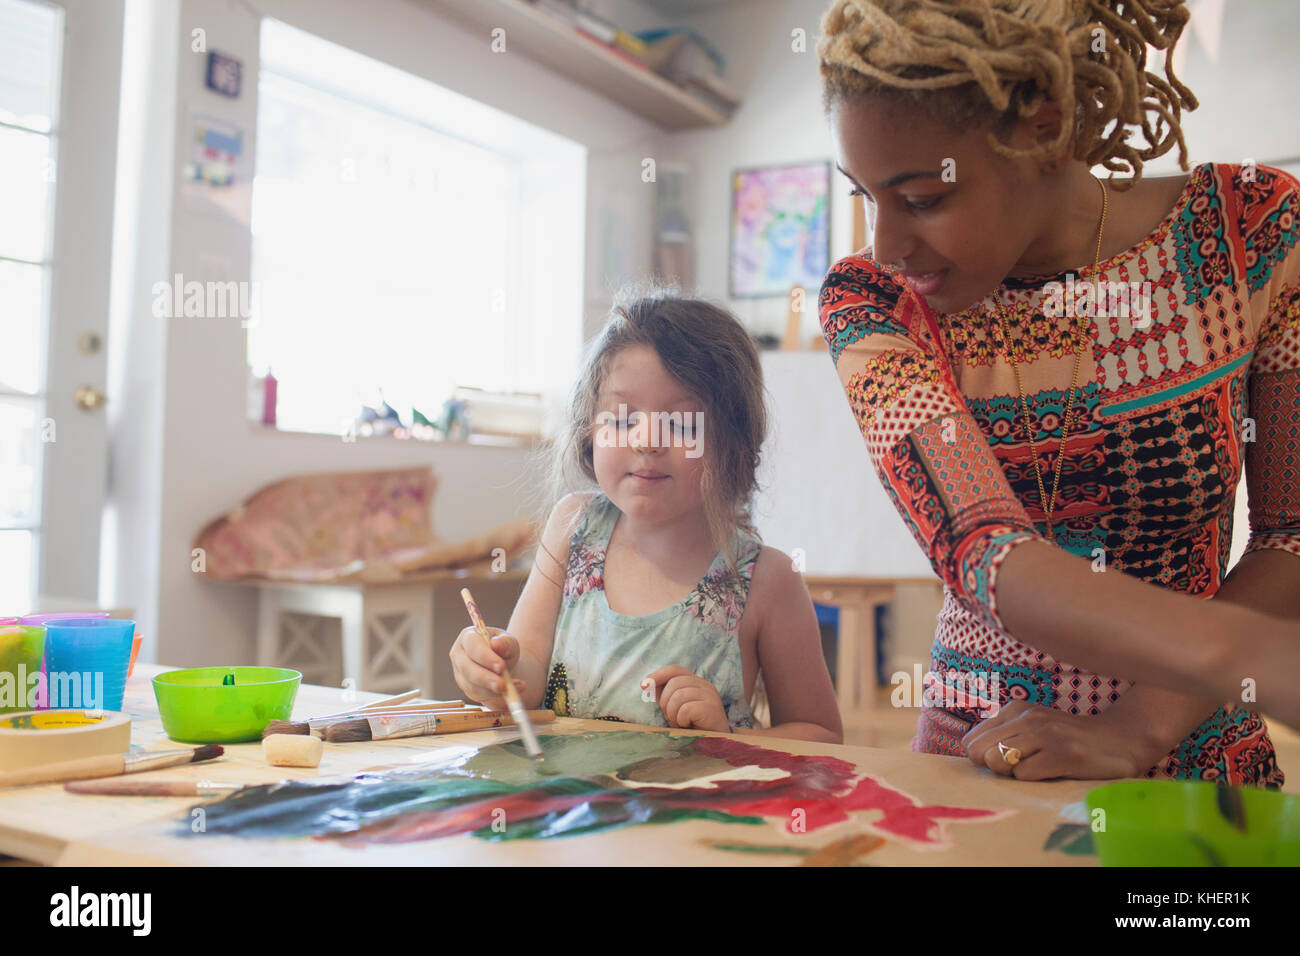 A young woman and girl painting - Stock Image